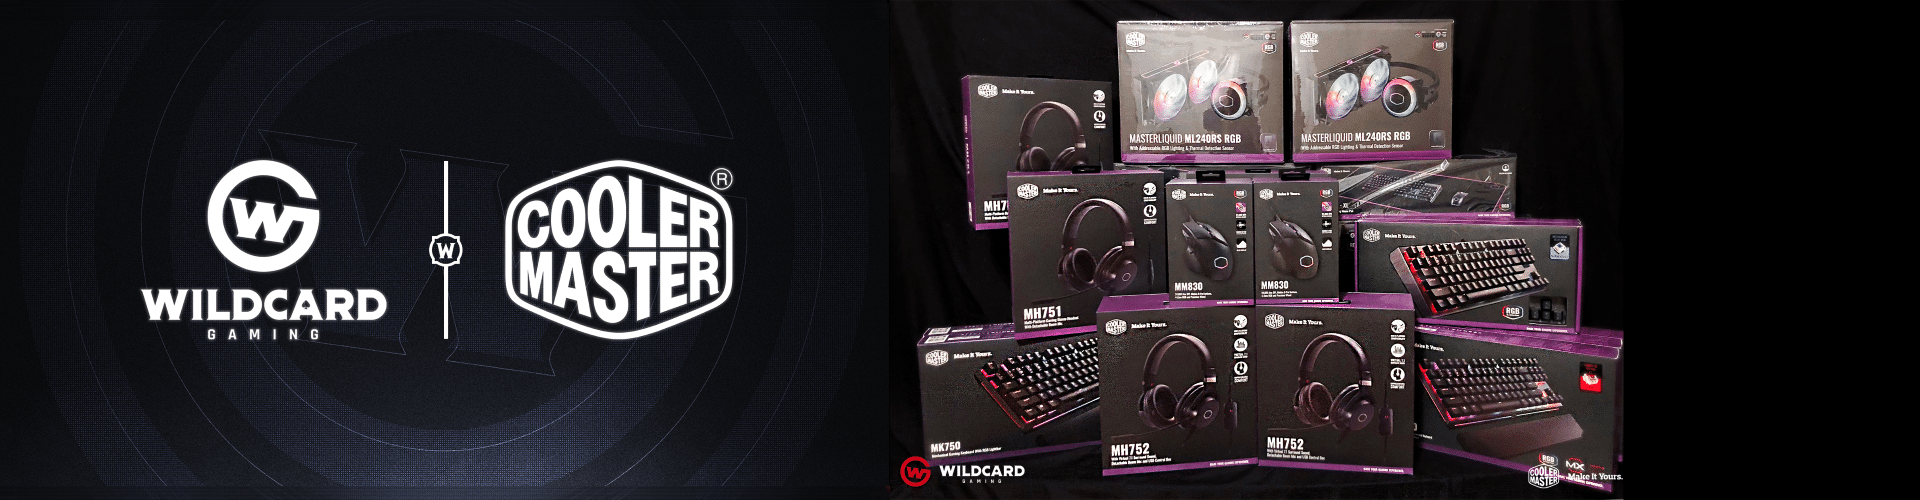 Wildcard Gaming World of Warcraft Partners with Cooler Master!!!